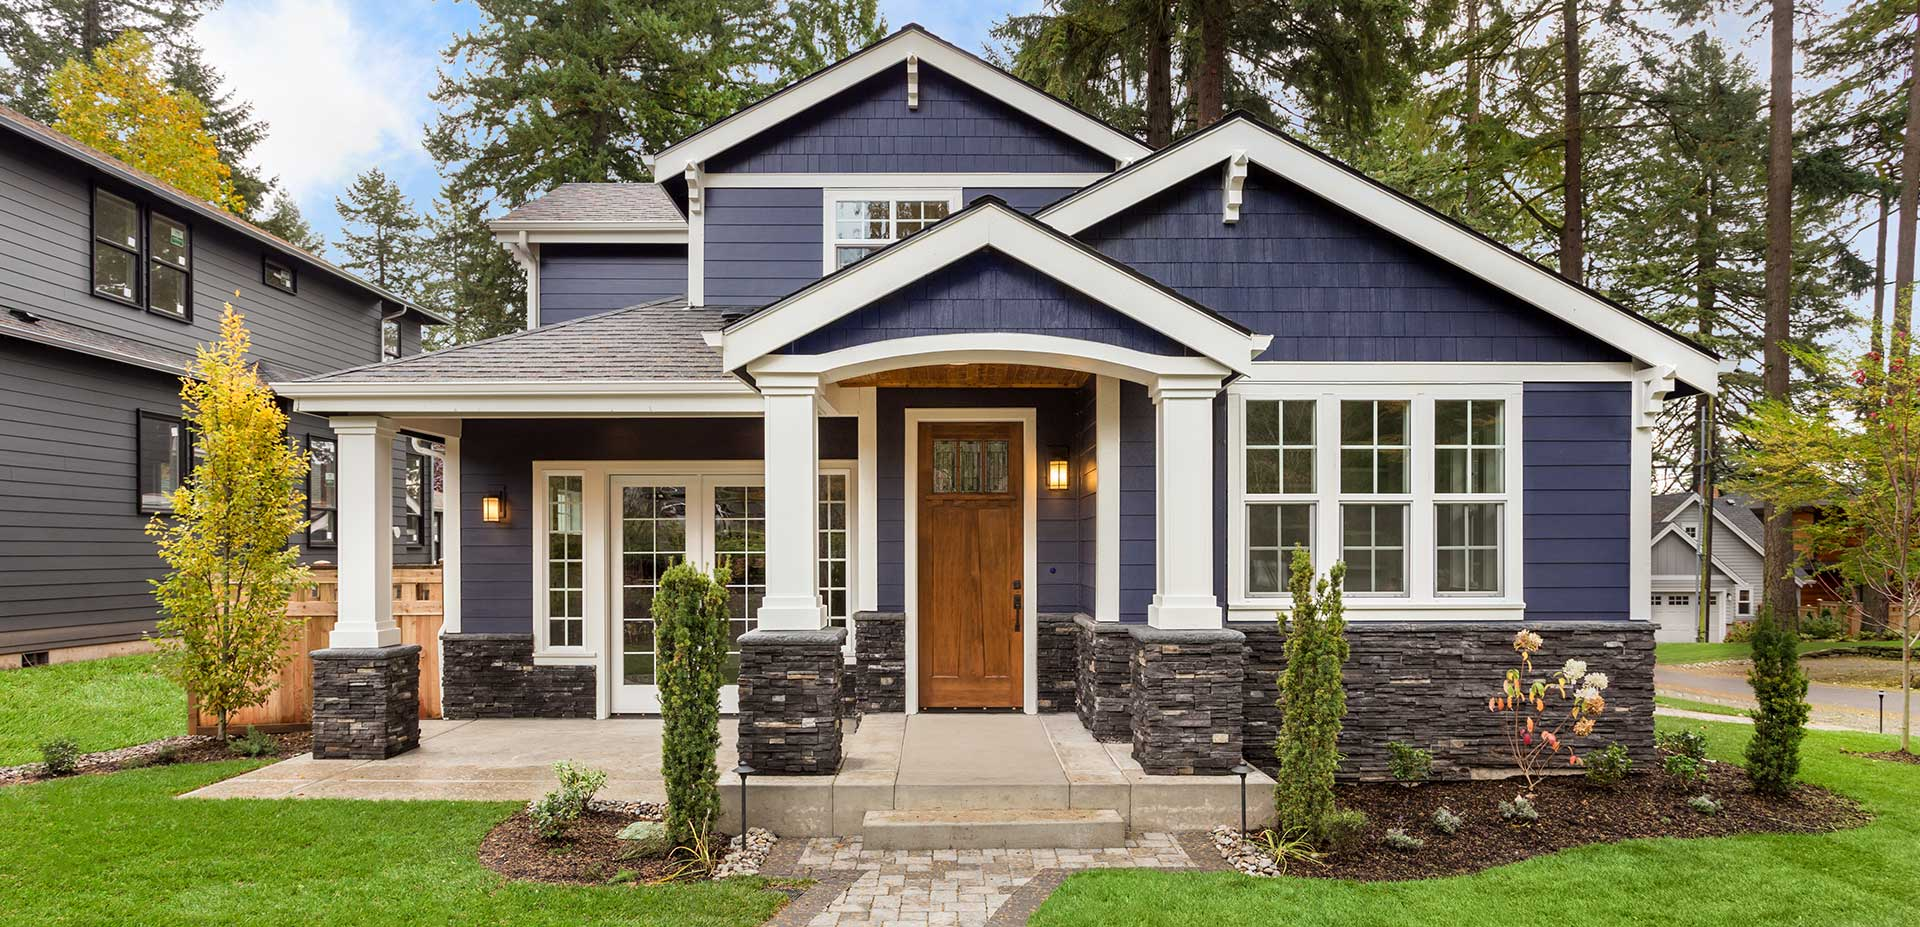 Beautiful Home front with tasteful blue siding.